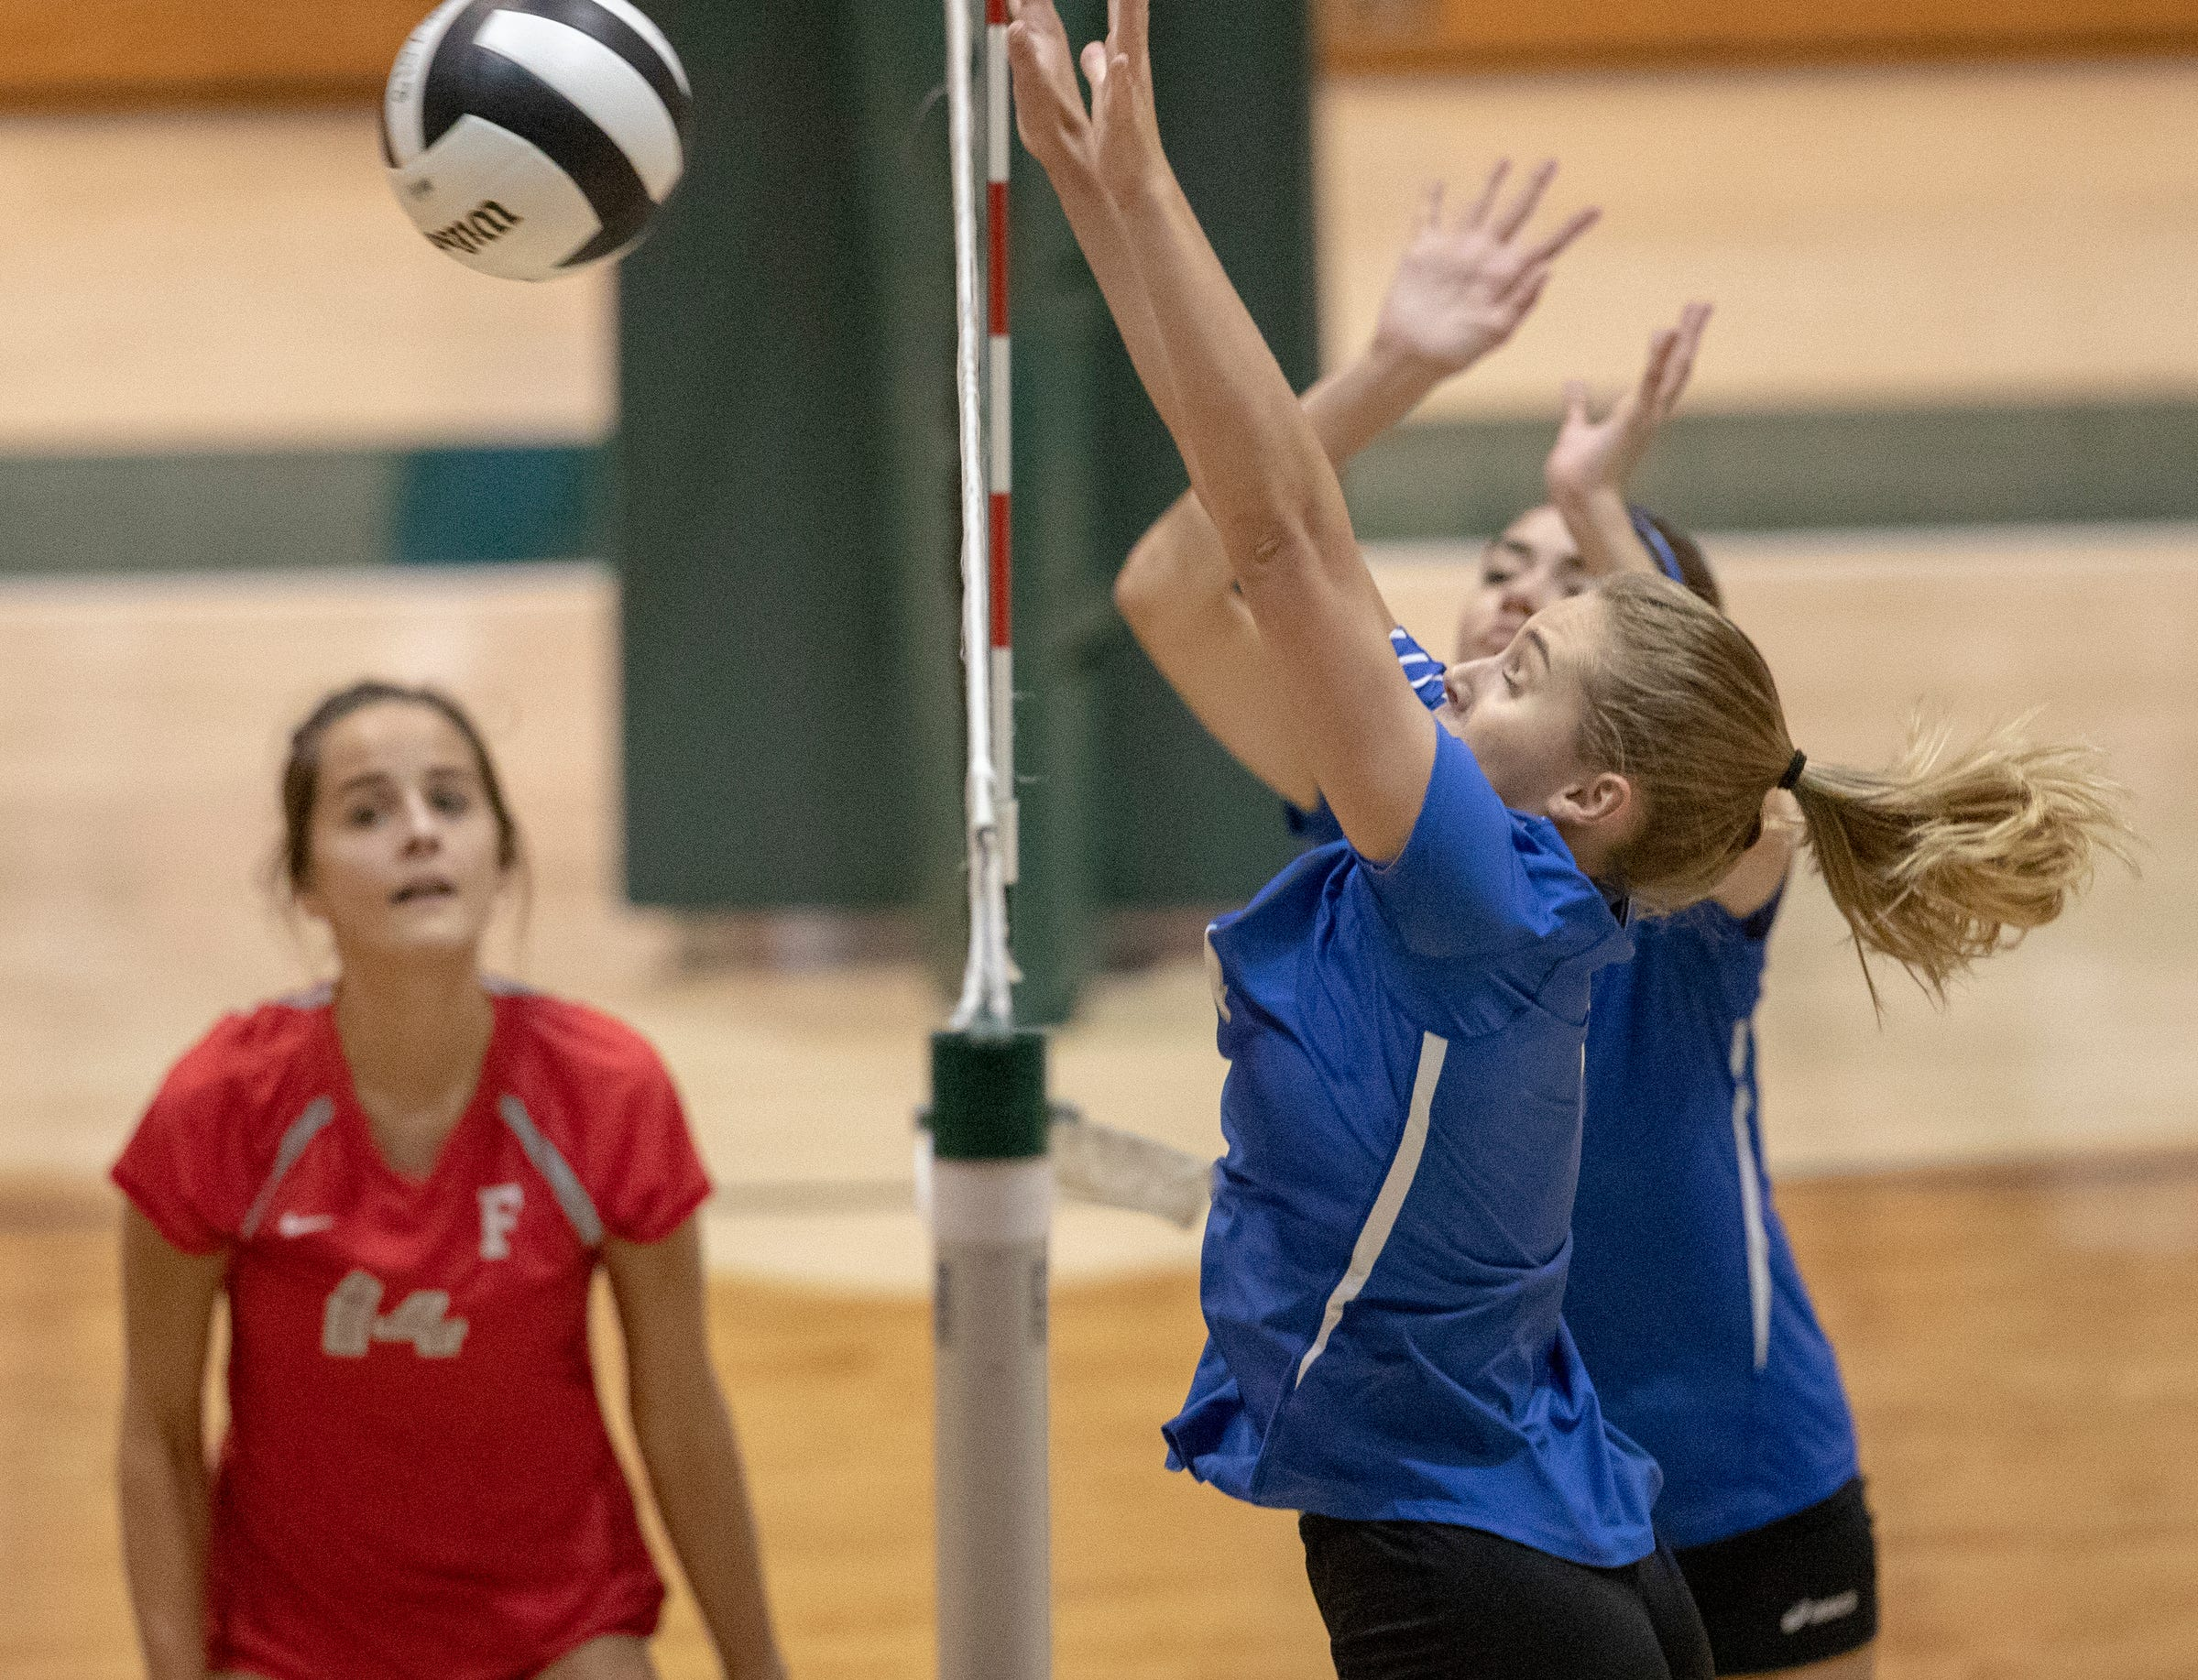 Hamilton Southeastern High School defenders work against a shot from Fishers High School as they lost to FHS in three straight sets in the first round of the volleyball sectional at Westfield High School, Westfield, Thursday, Oct. 11, 2018. The win matches them up with Westfield High School for a game on Saturday morning at 11a.m.